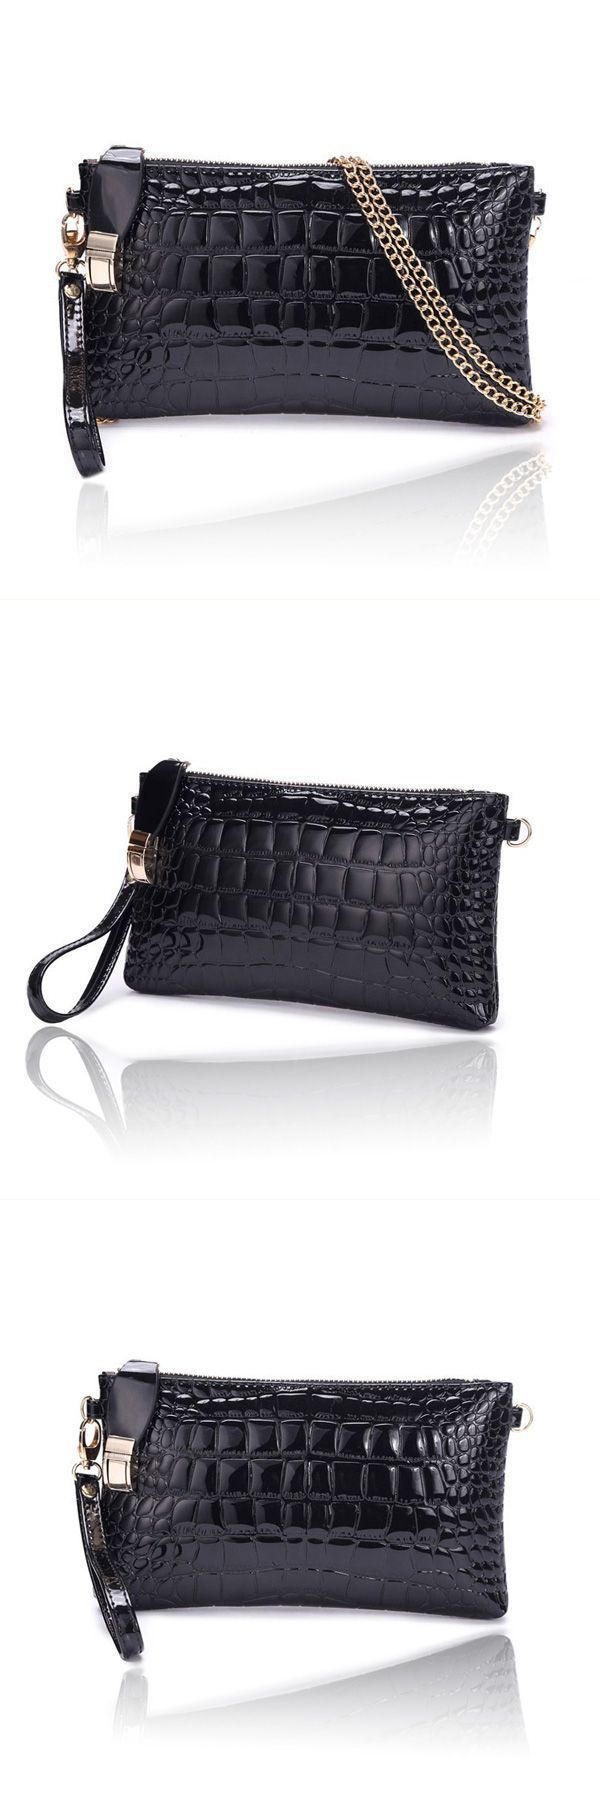 Women 8217 S Crocodile Pattern Chain Clutch Handbag Shoulder Diagonal Bags Handmade Diy Edinburgh